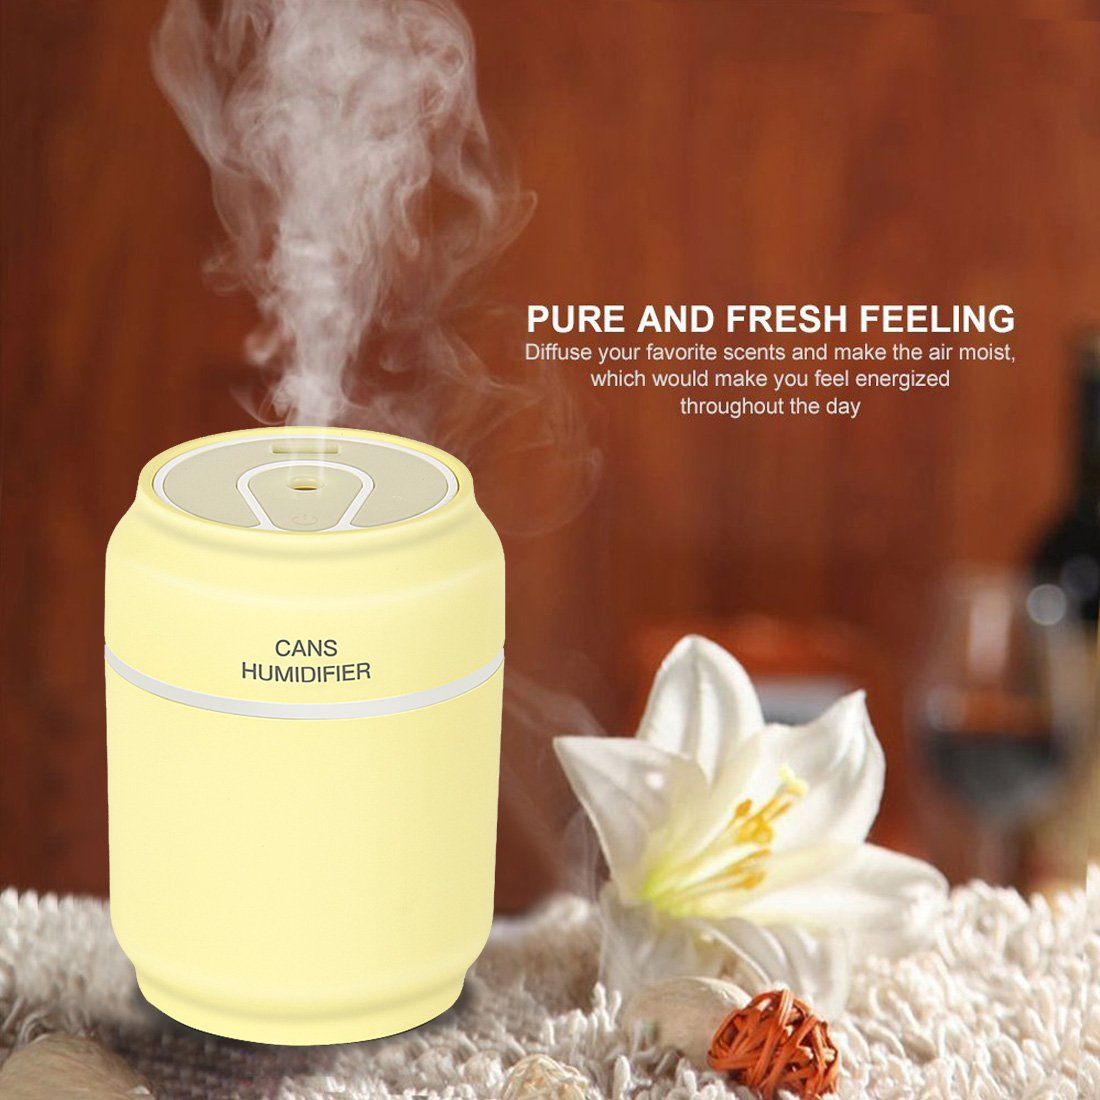 Cool Mist Humidifier,Sysmarts Ultrasonic USB Portable Air Humidifiers Purifier for Cars Office Desk Home Babies kids Bedroom, Mini Desktop Cup Humidifier,Light Yellow